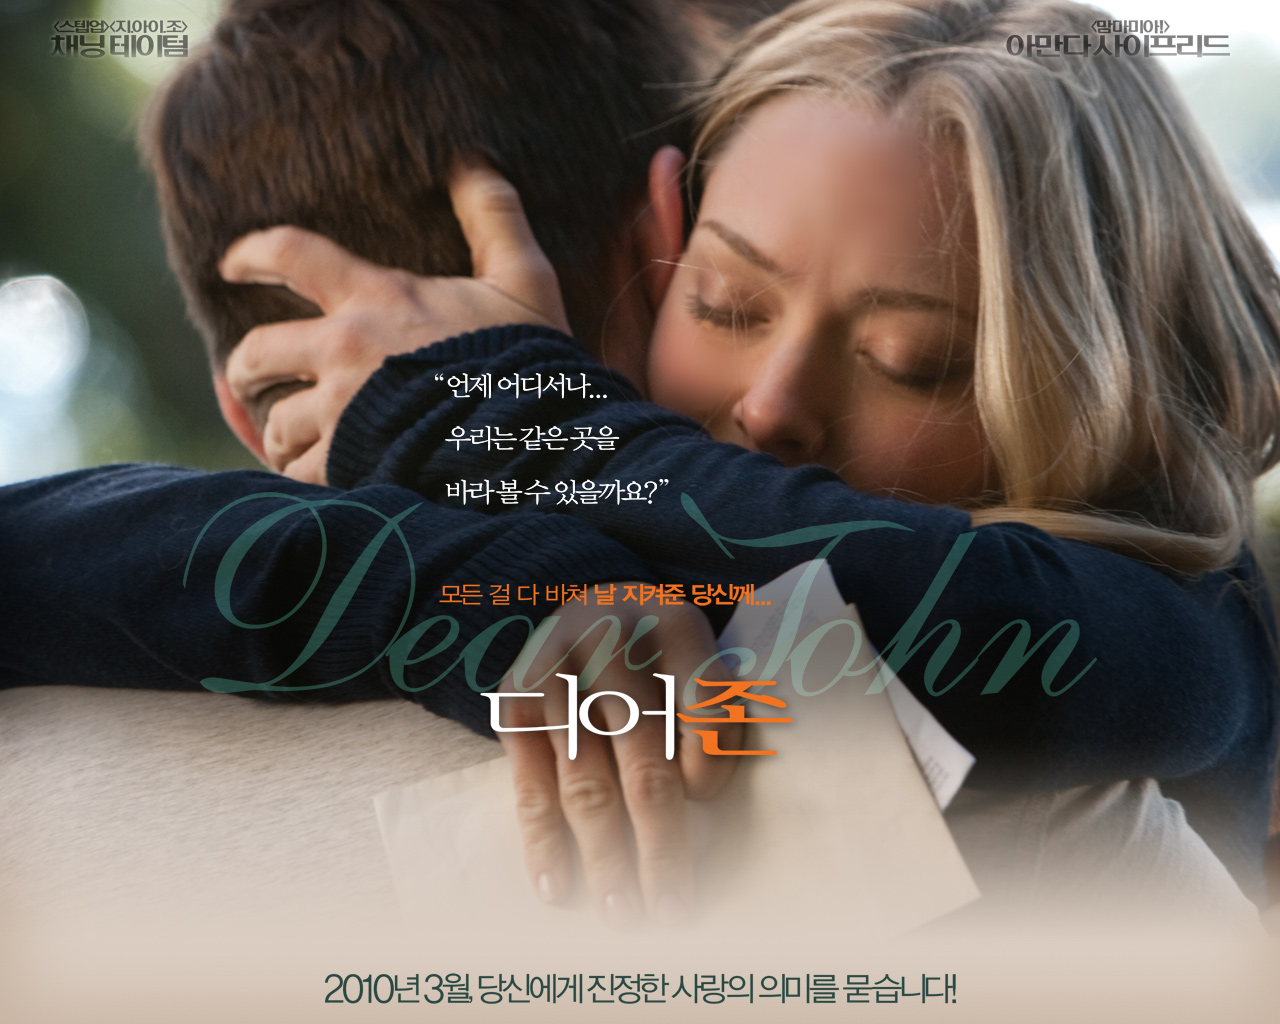 Channing Tatum and Amanda Seyfried in 'Dear John' Wallpapers Korea